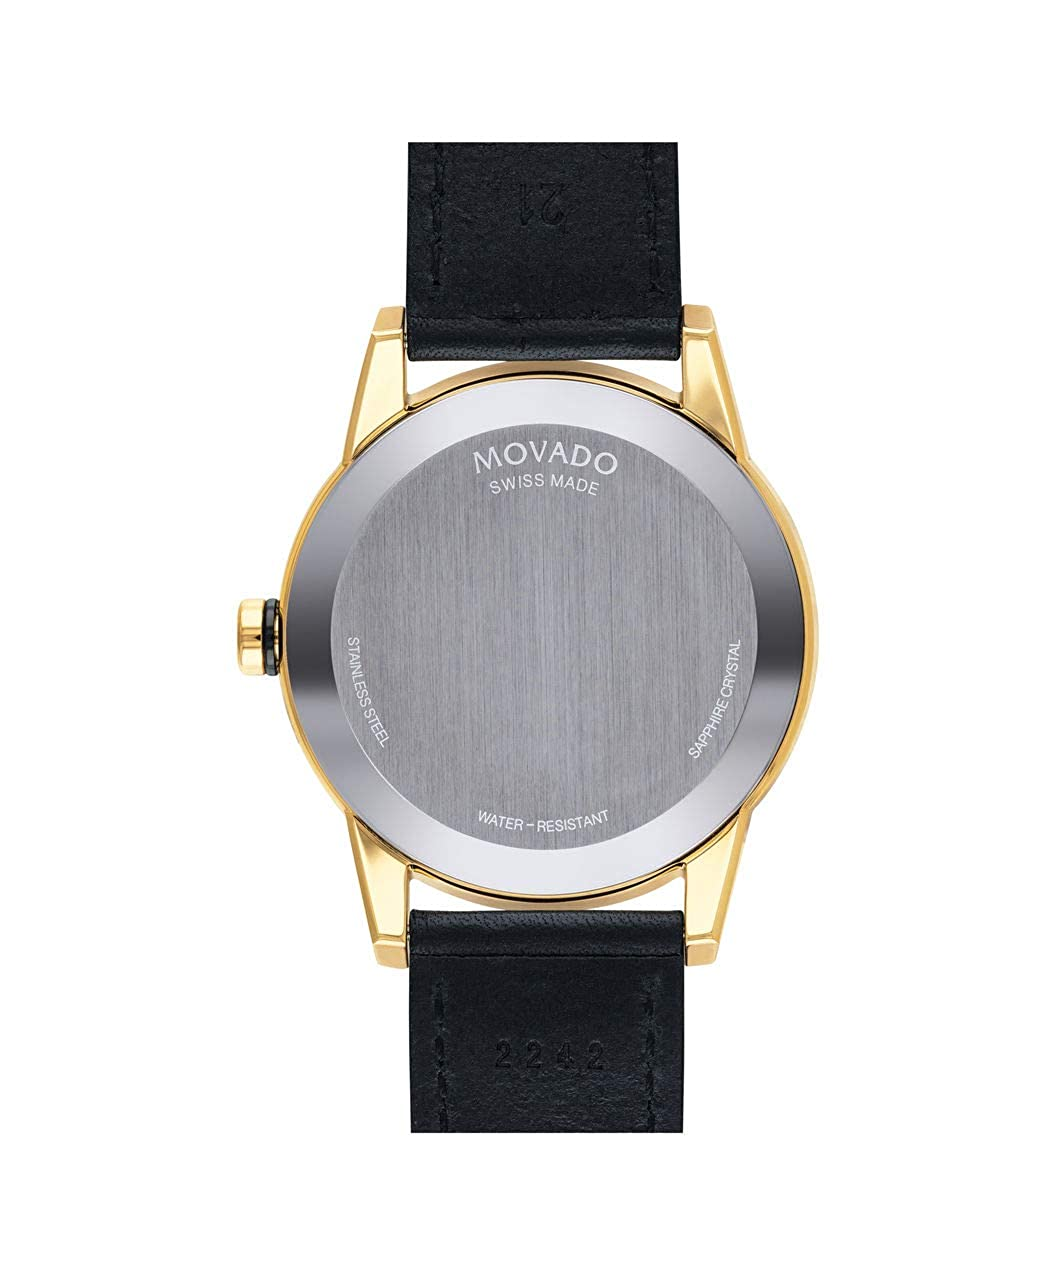 c158717be Amazon.com: Movado Men's Museum Sport Yellow Gold Watch with a Printed  Index Dial, Black/Gold (Model 0607223): Watches